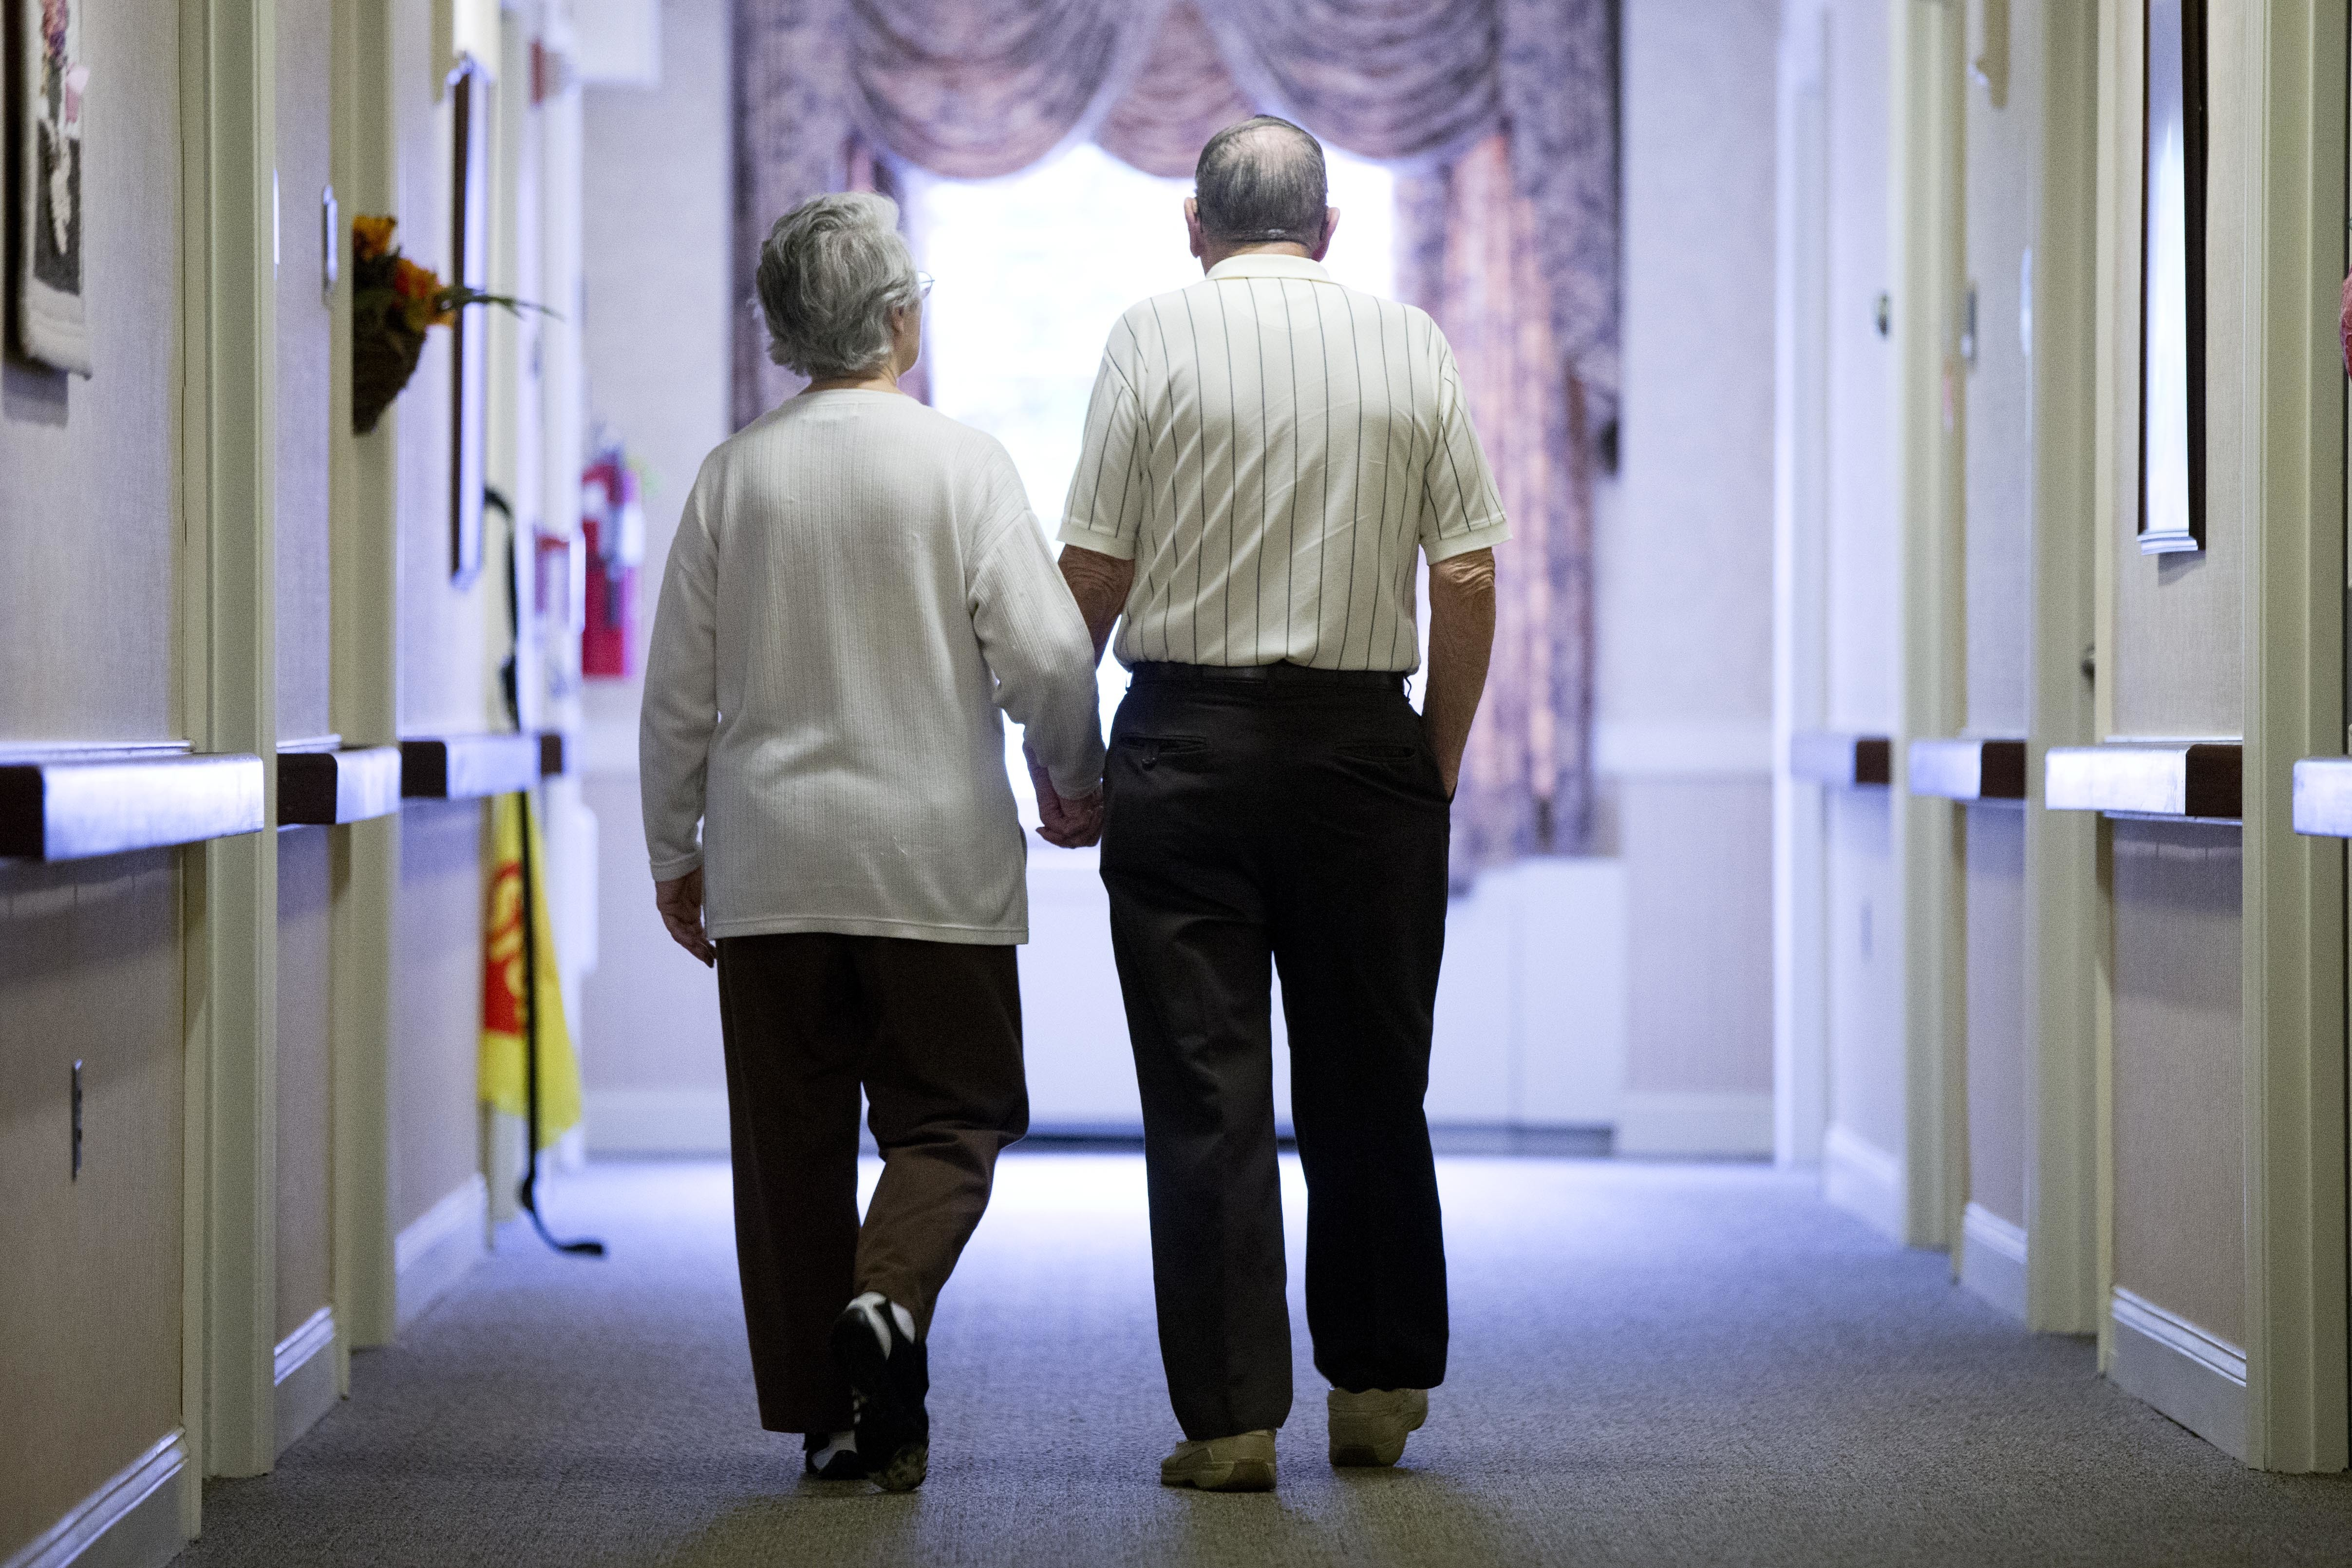 File -- By 2030, 1 in every 5 U.S. residents will be of retirement age, which will fuel the demand for more health care professionals.